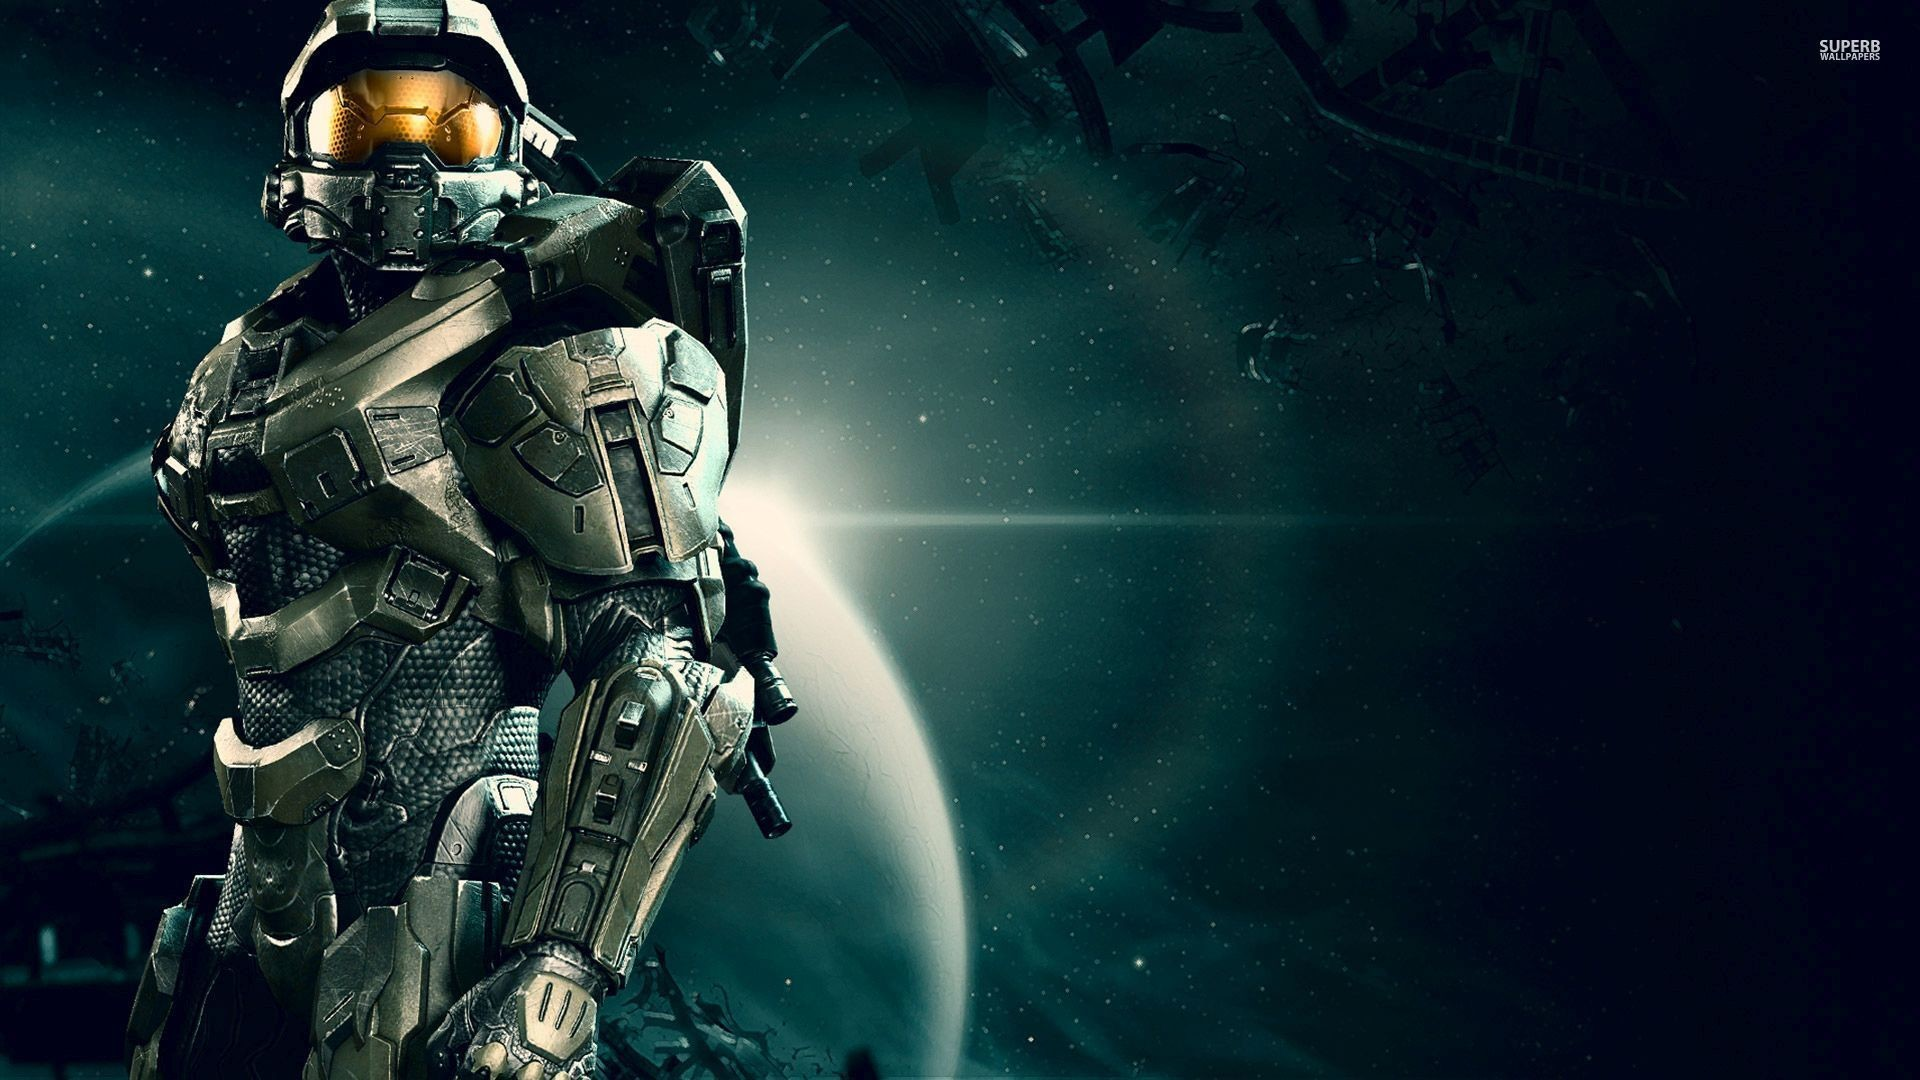 Halo 5 Master Chief HD Background Wallpapers 14111 – Amazing .